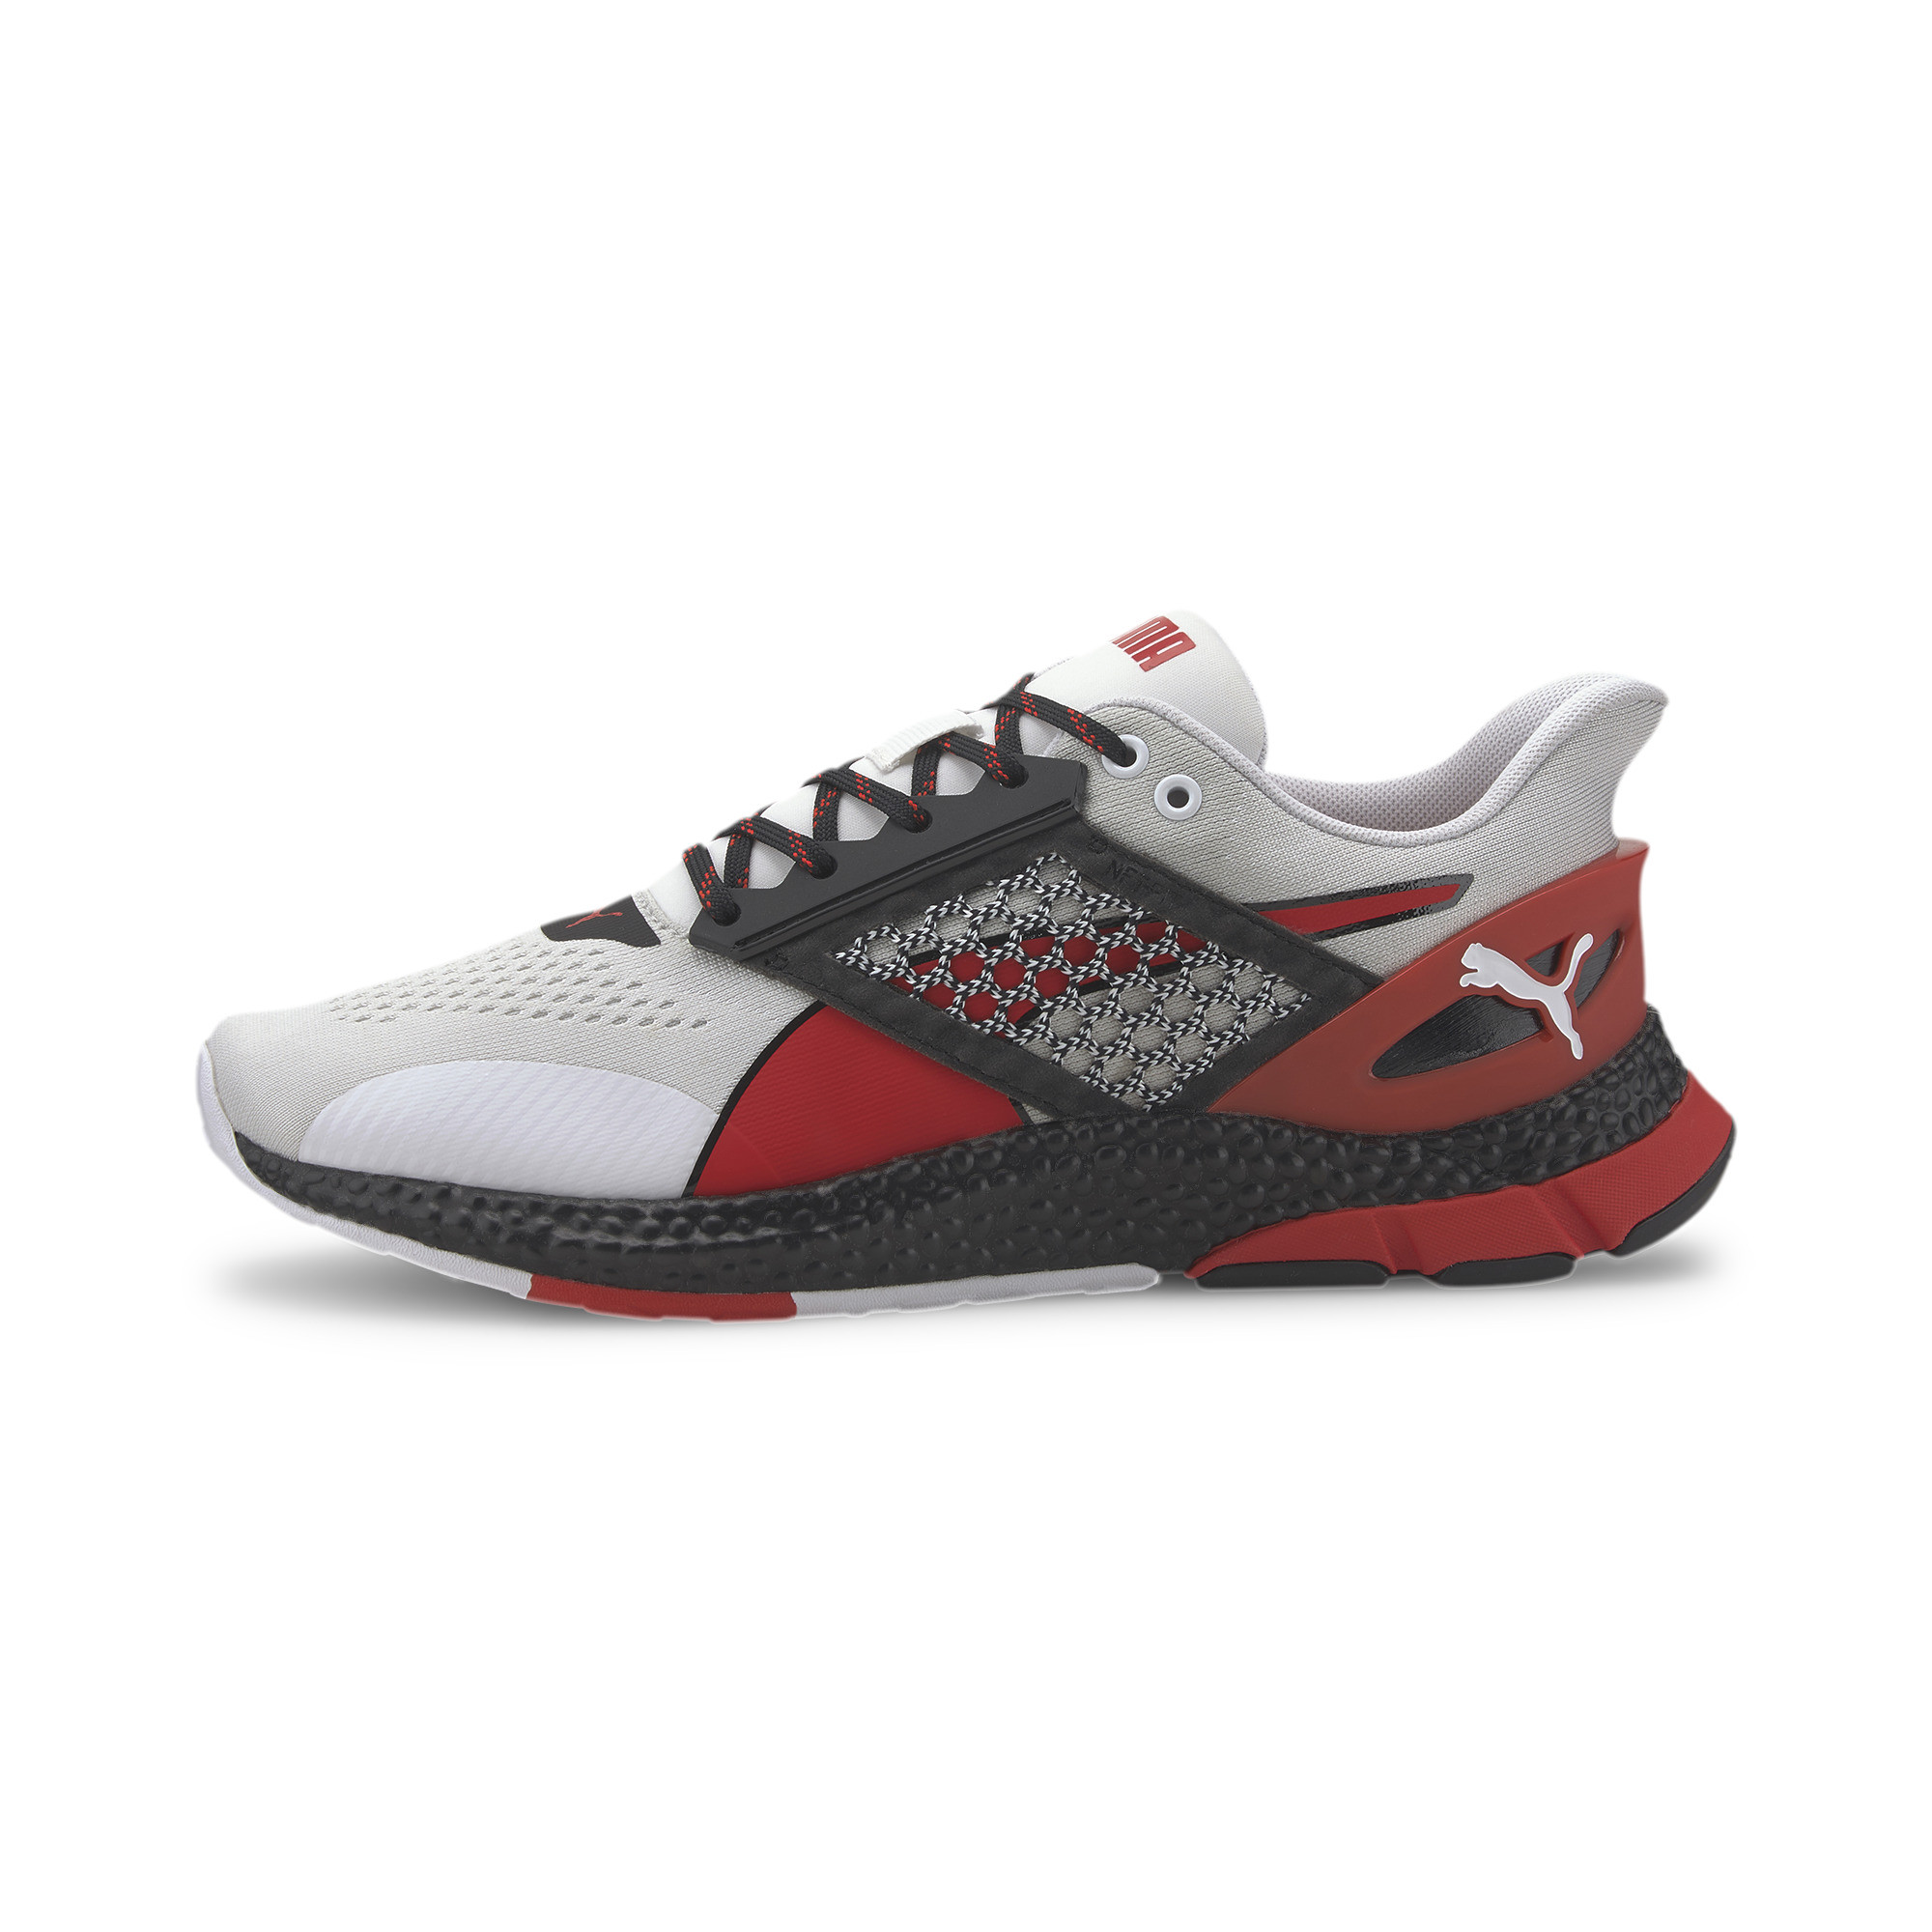 PUMA-Men-039-s-HYBRID-Astro-Running-Shoes thumbnail 20